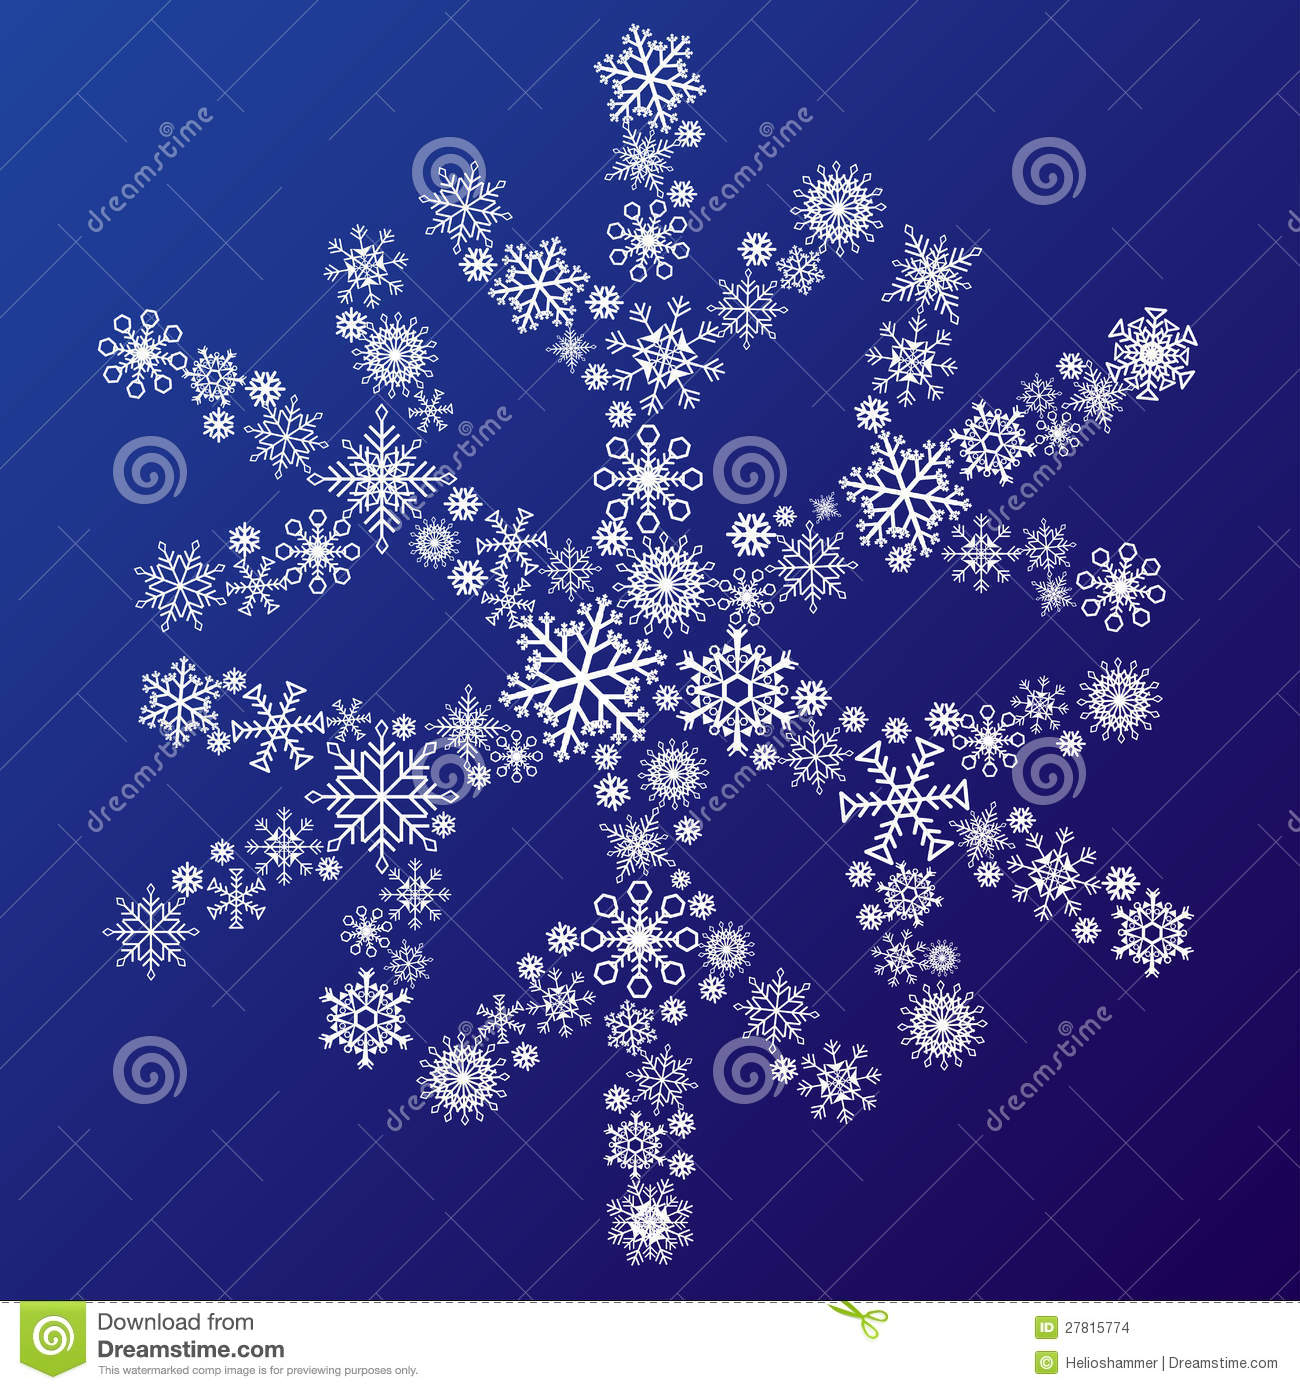 small snowflakes forming a big snowflake stock images